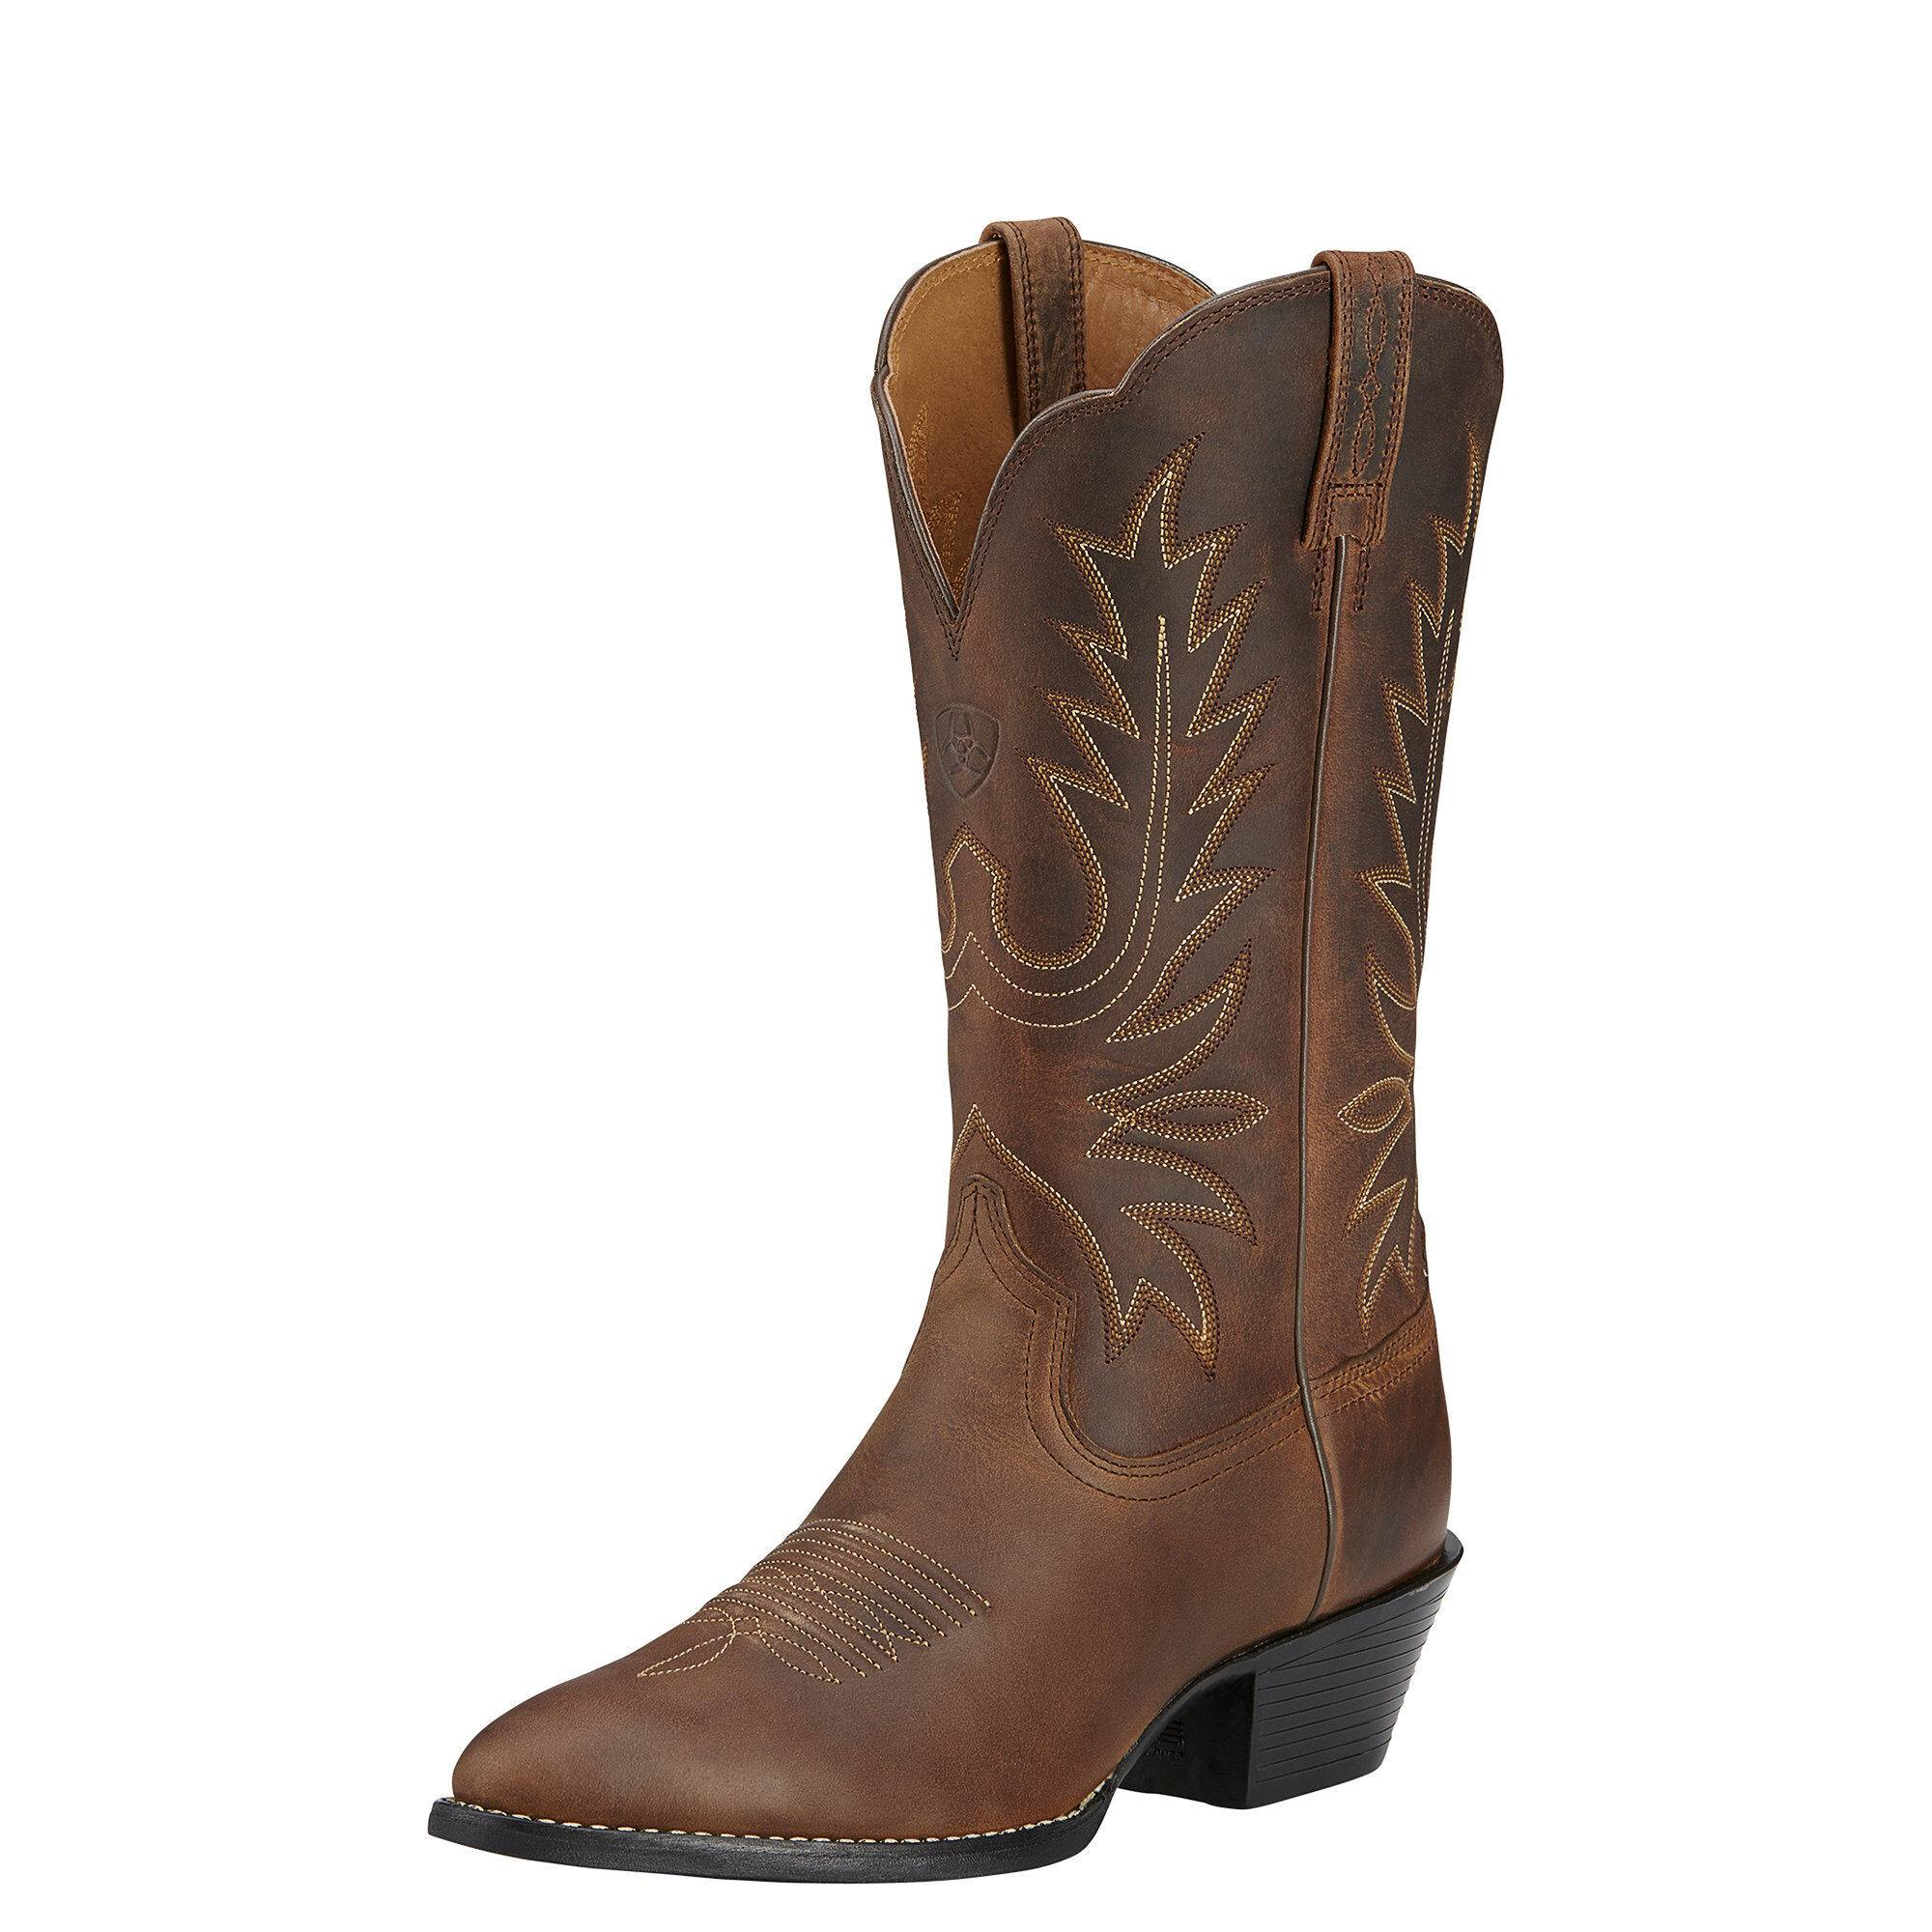 Ariat Women's Heritage R Toe Western Boots in Distressed Brown, Size 9.5 C / Wide by Ariat